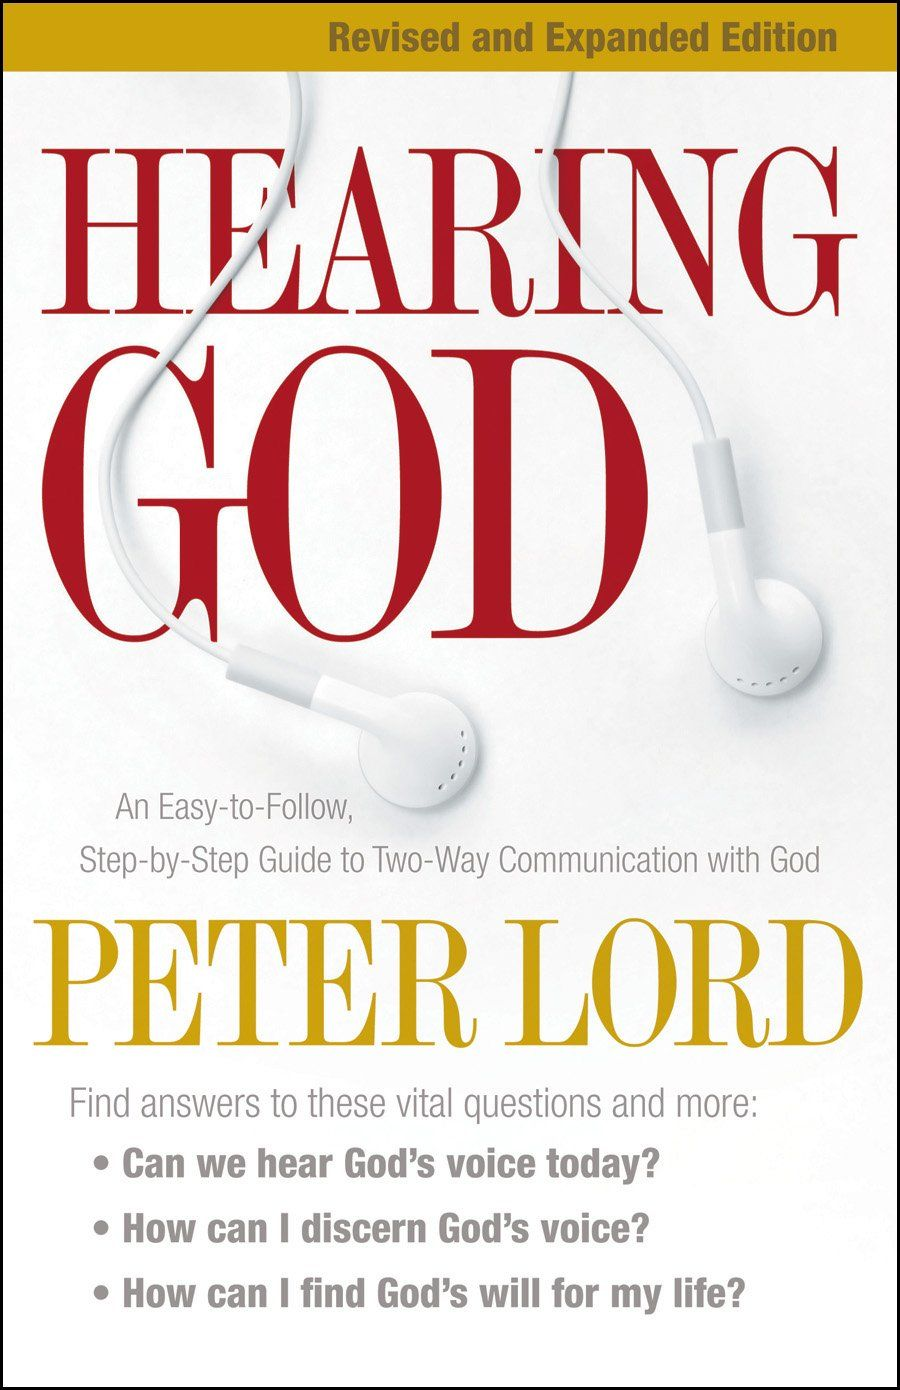 Hearing god by peter lord i feel mr lord did an